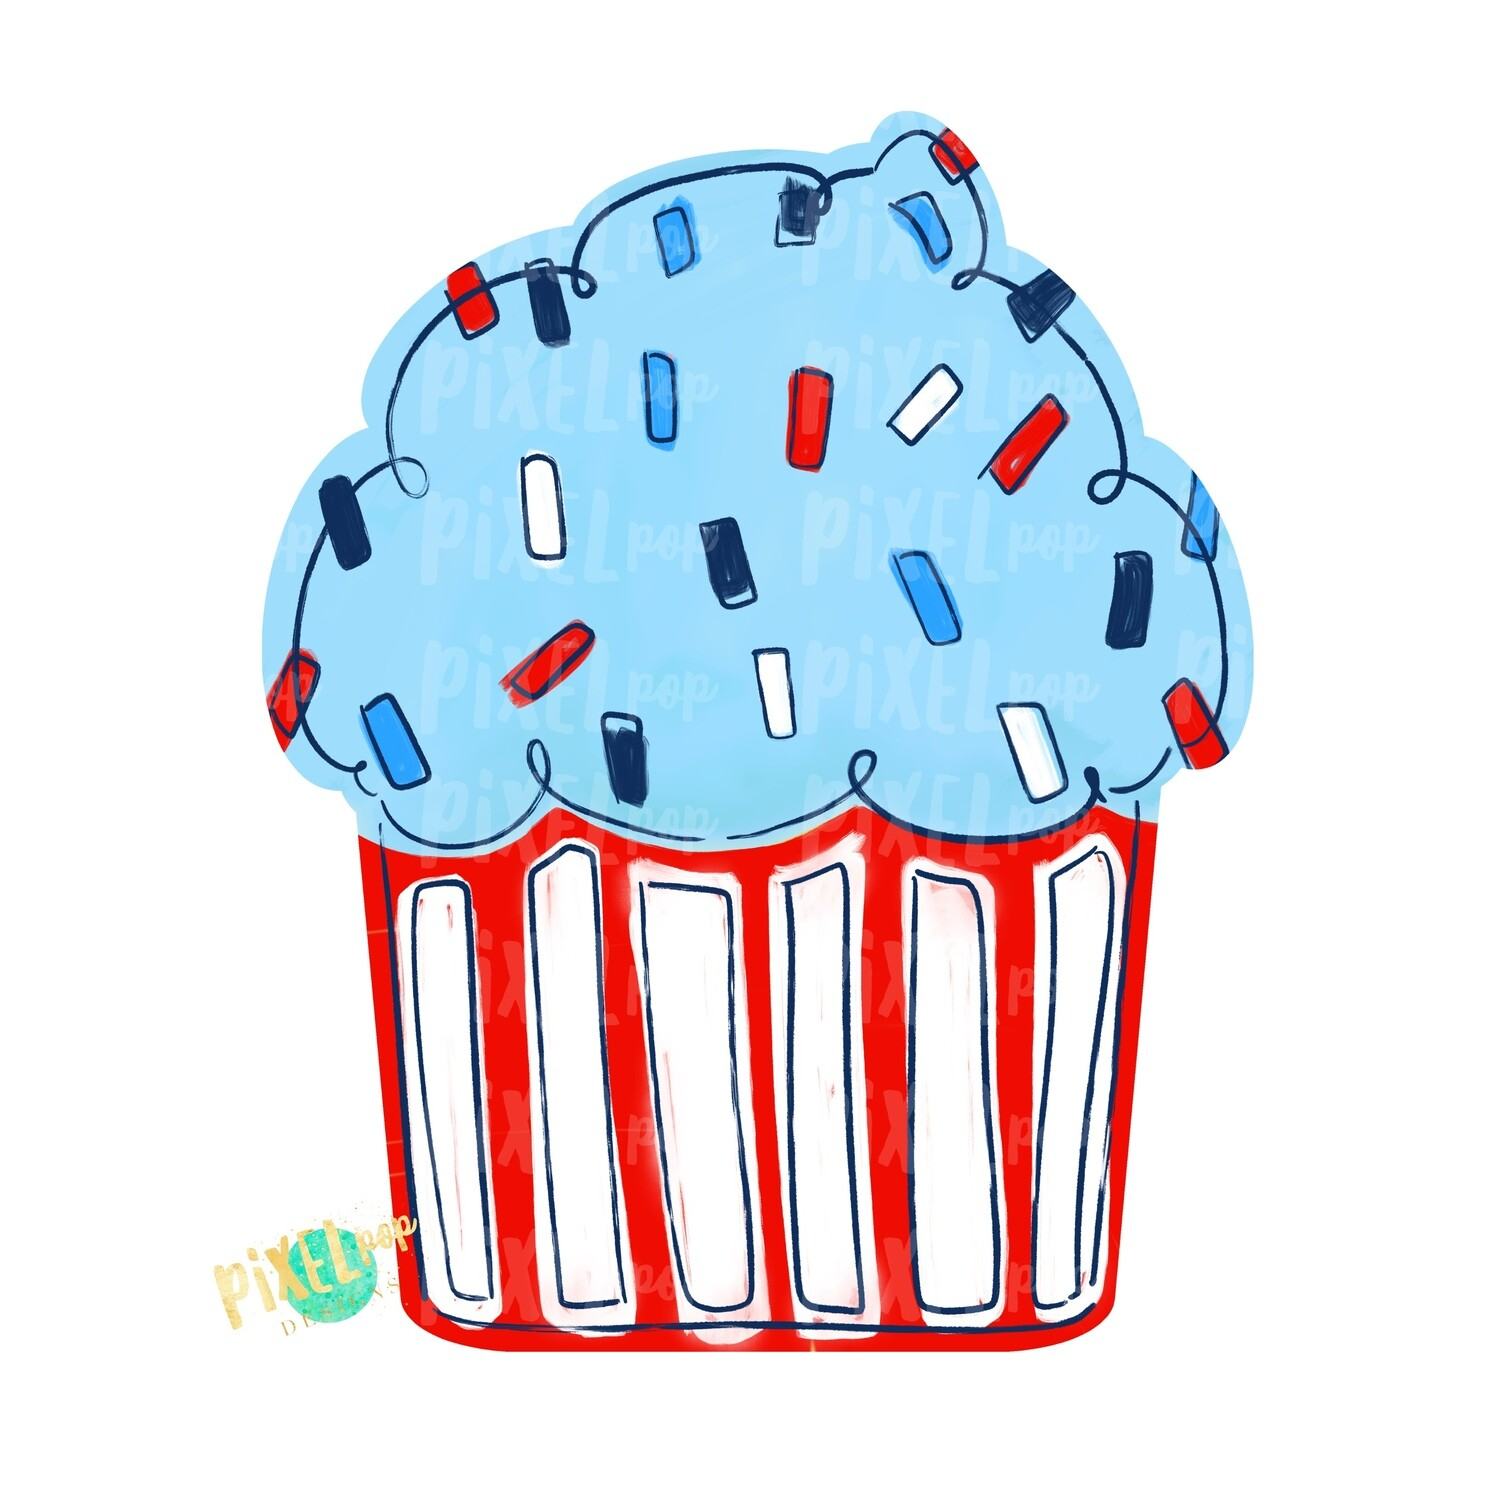 Red White Blue July 4th Cupcake PNG | Cupcake | Cupcake Door Hanger PNG | Sublimation | Digital Download | Red White Blue | 4th